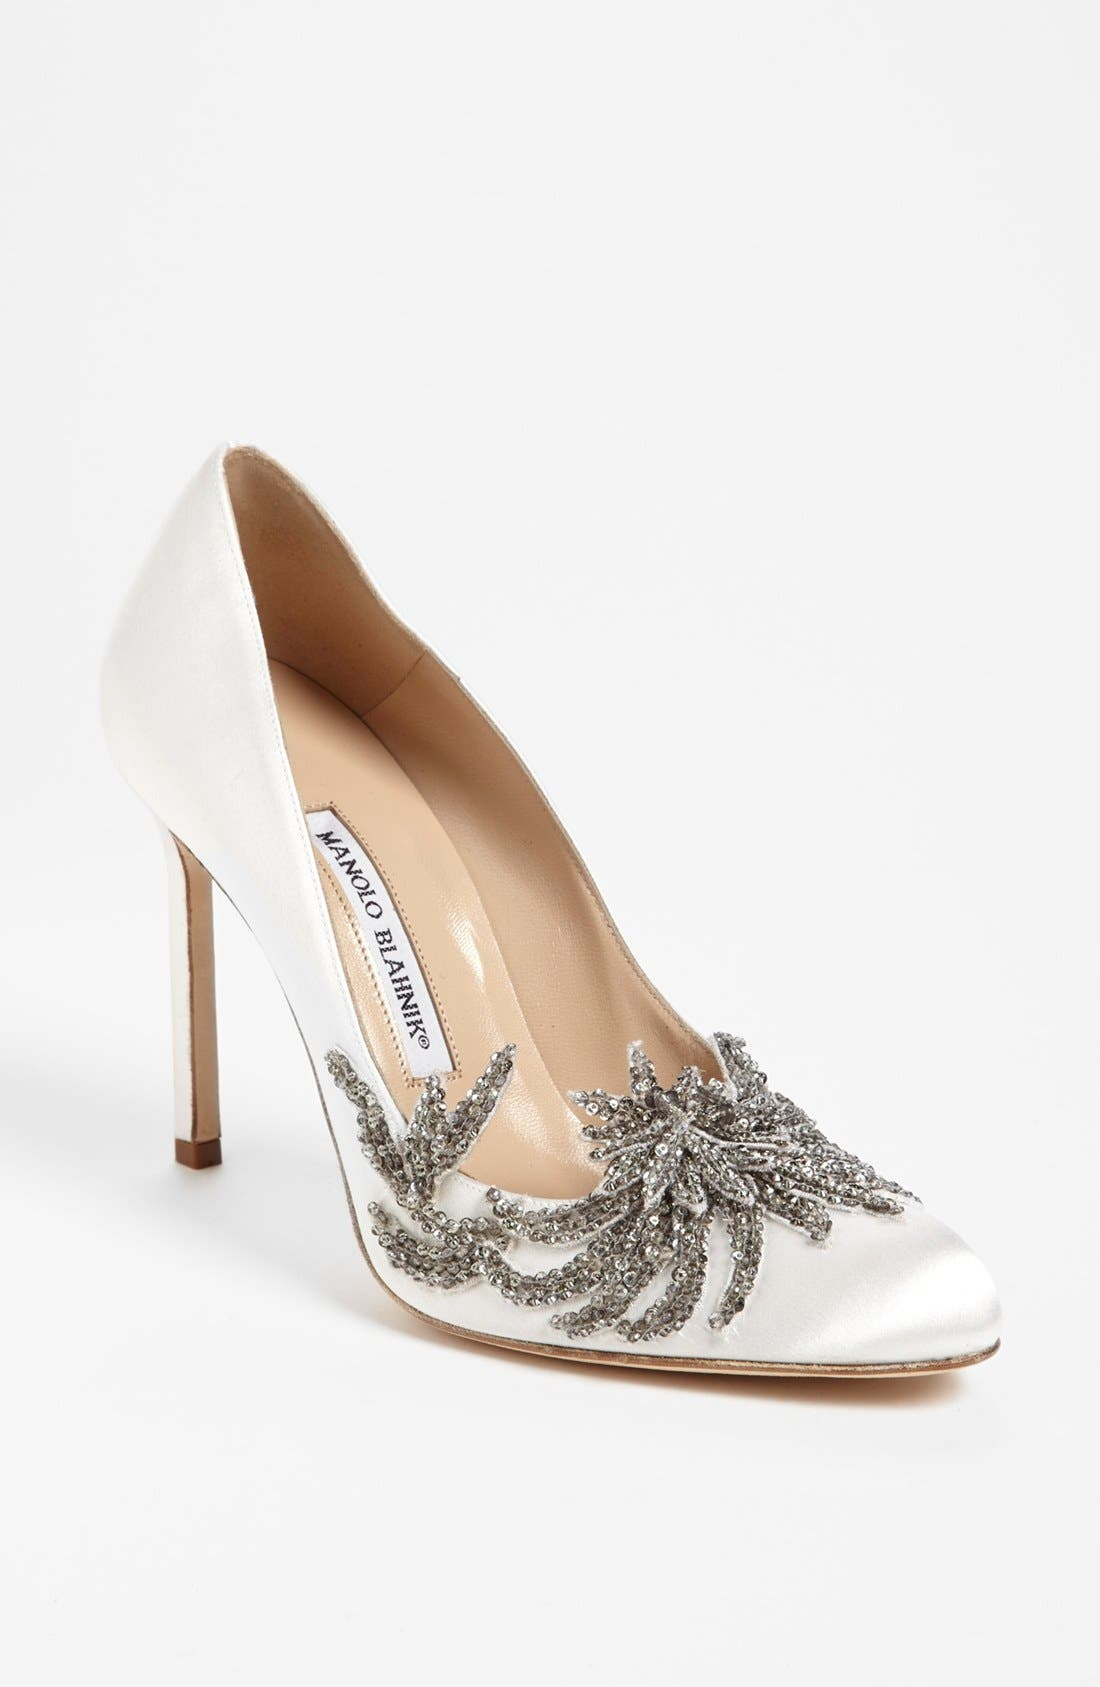 Alternate Image 1 Selected - Manolo Blahnik 'Swan' Pump (Women)